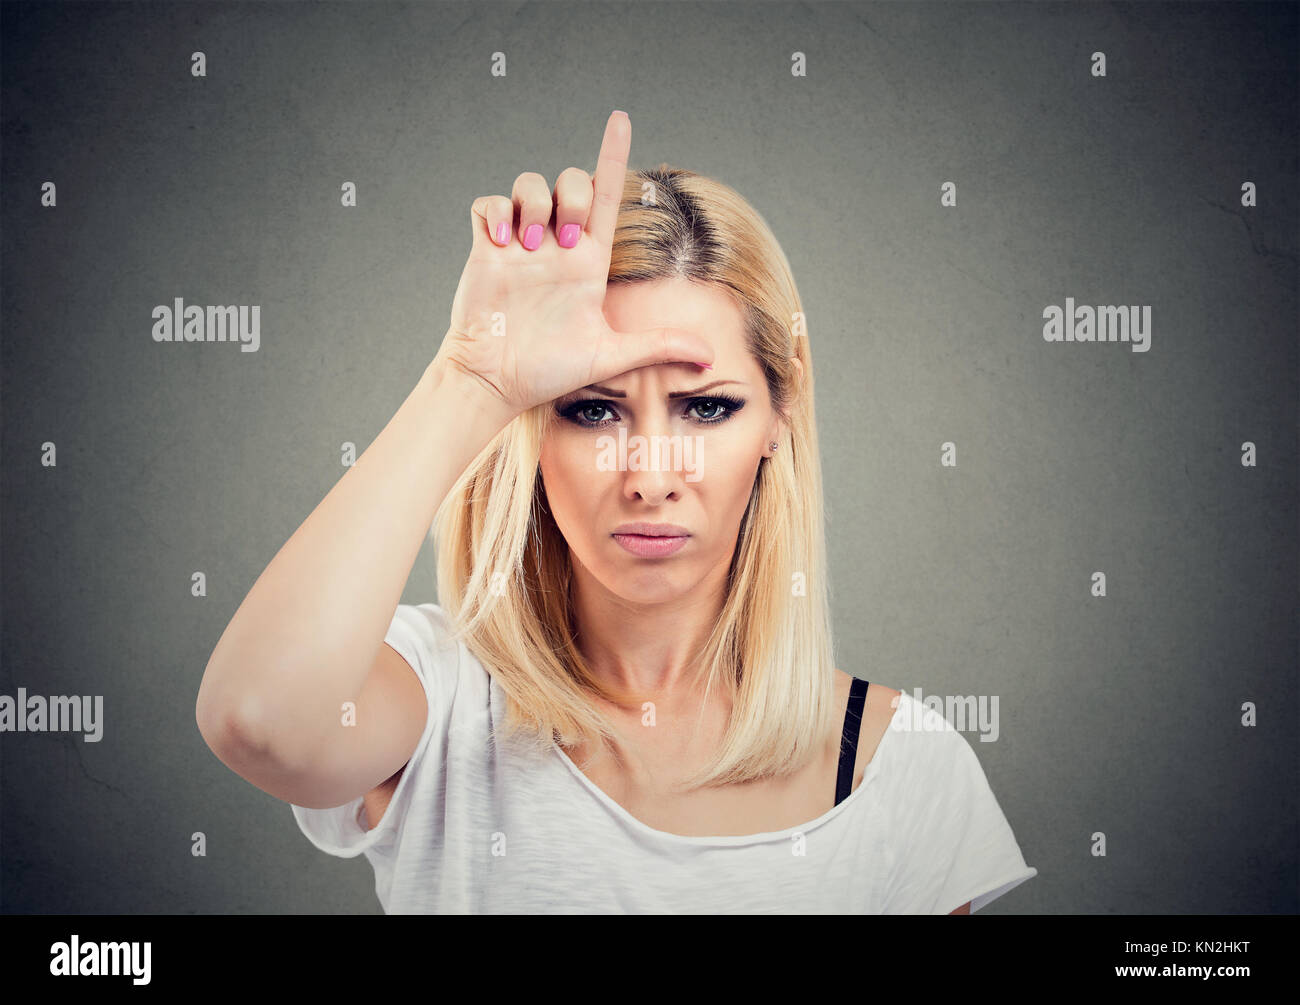 Closeup portrait unhappy woman giving loser sign on forehead, looking at you with anger and hatred on face isolated - Stock Image